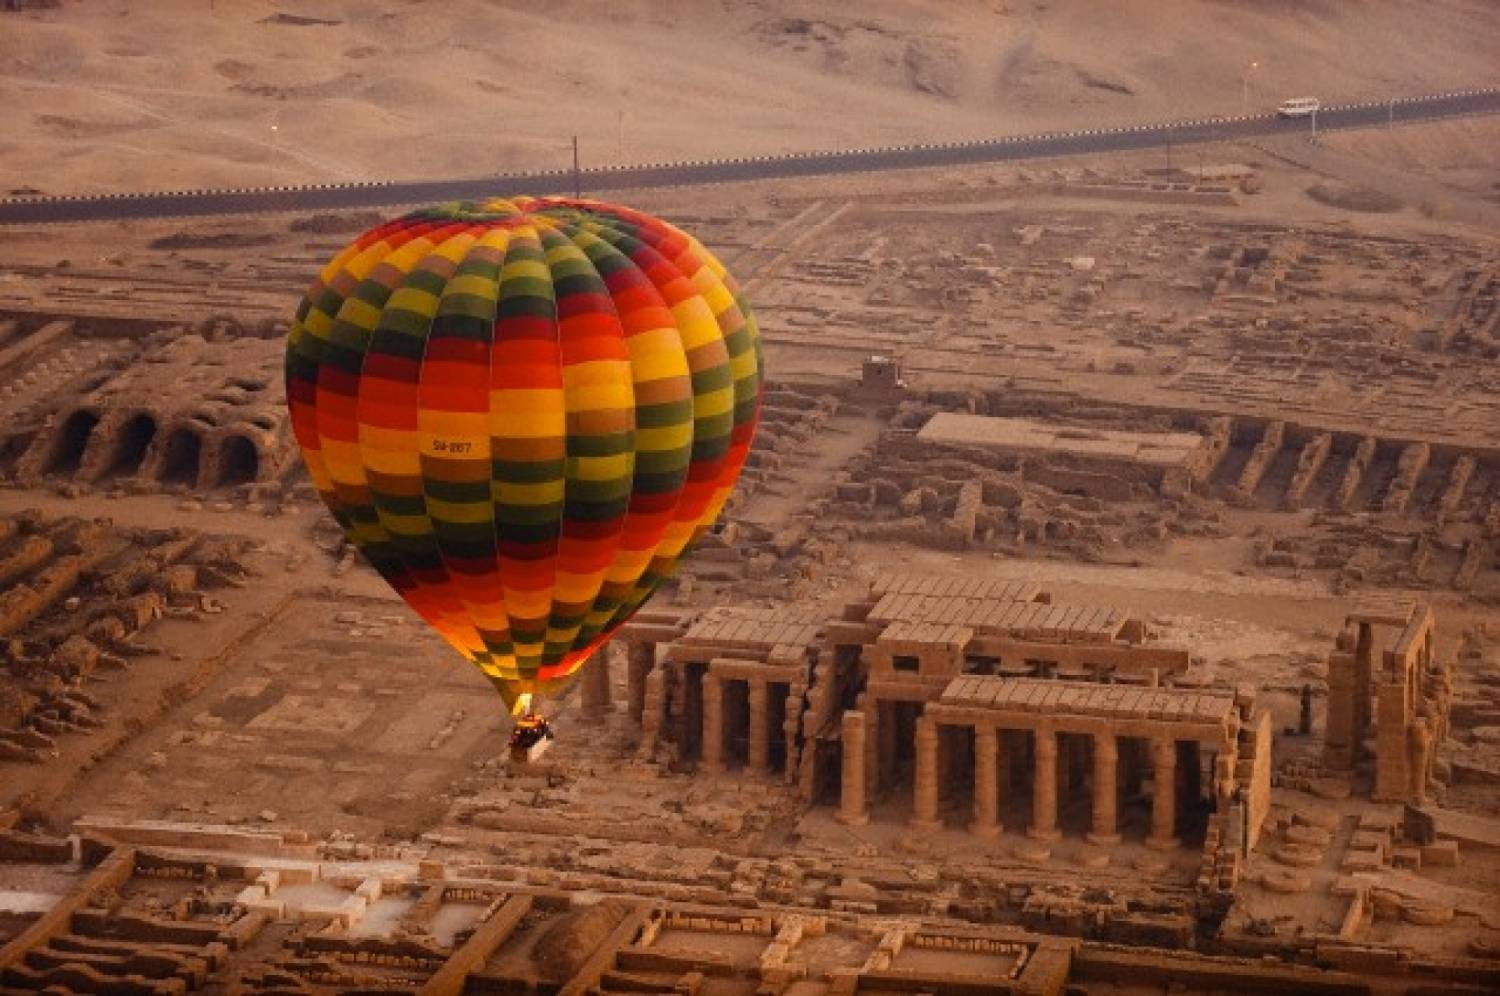 Egypt: hot air balloon crashes, killing 1 tourist